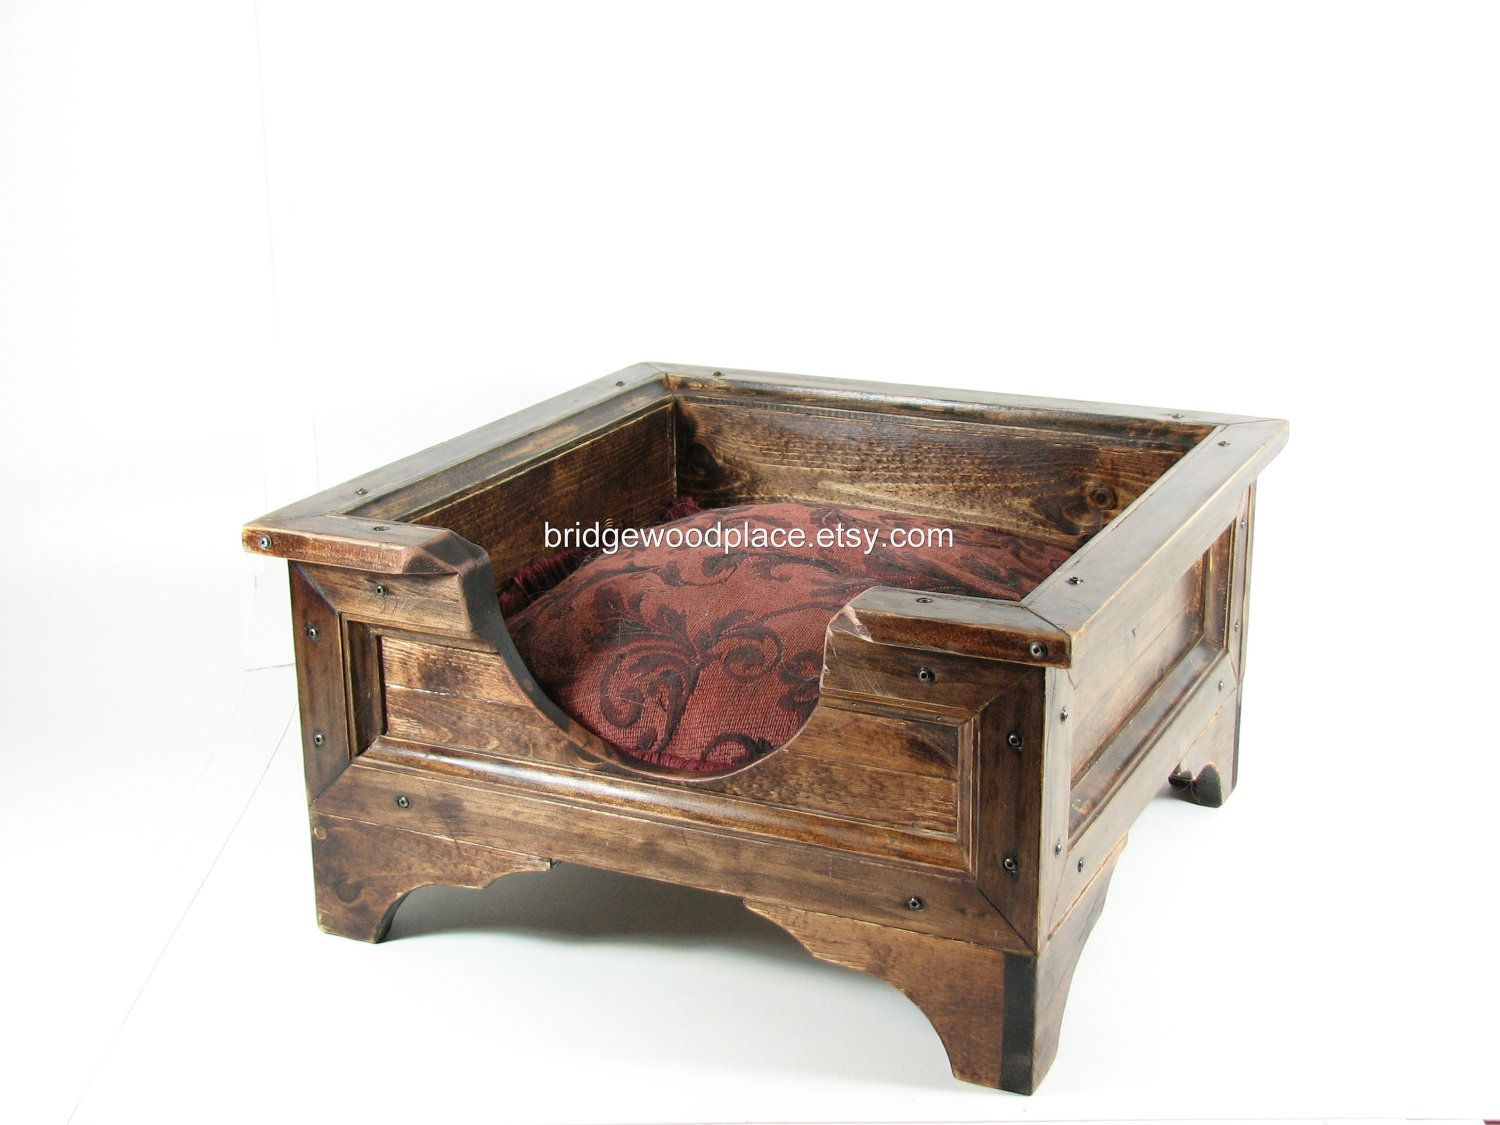 Cat Beds And Furniture Pet Bed Furniture Cat Bed Small Dog Bed Wood Crate Wooden